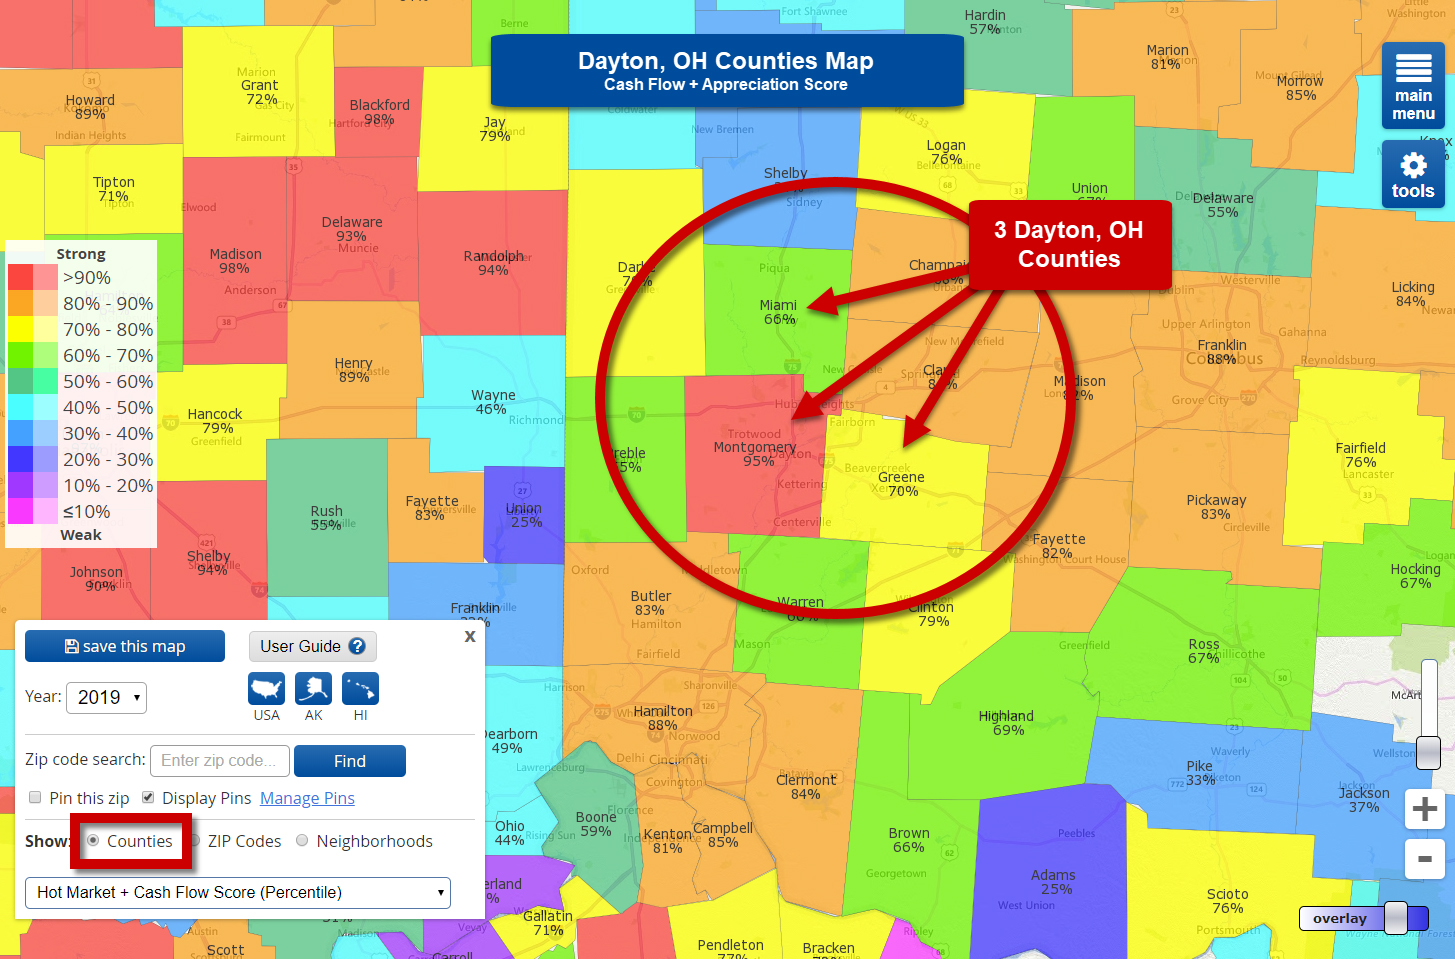 3 High Appreciation/Cash Flow Real Estate Markets in Dayton, OH counties